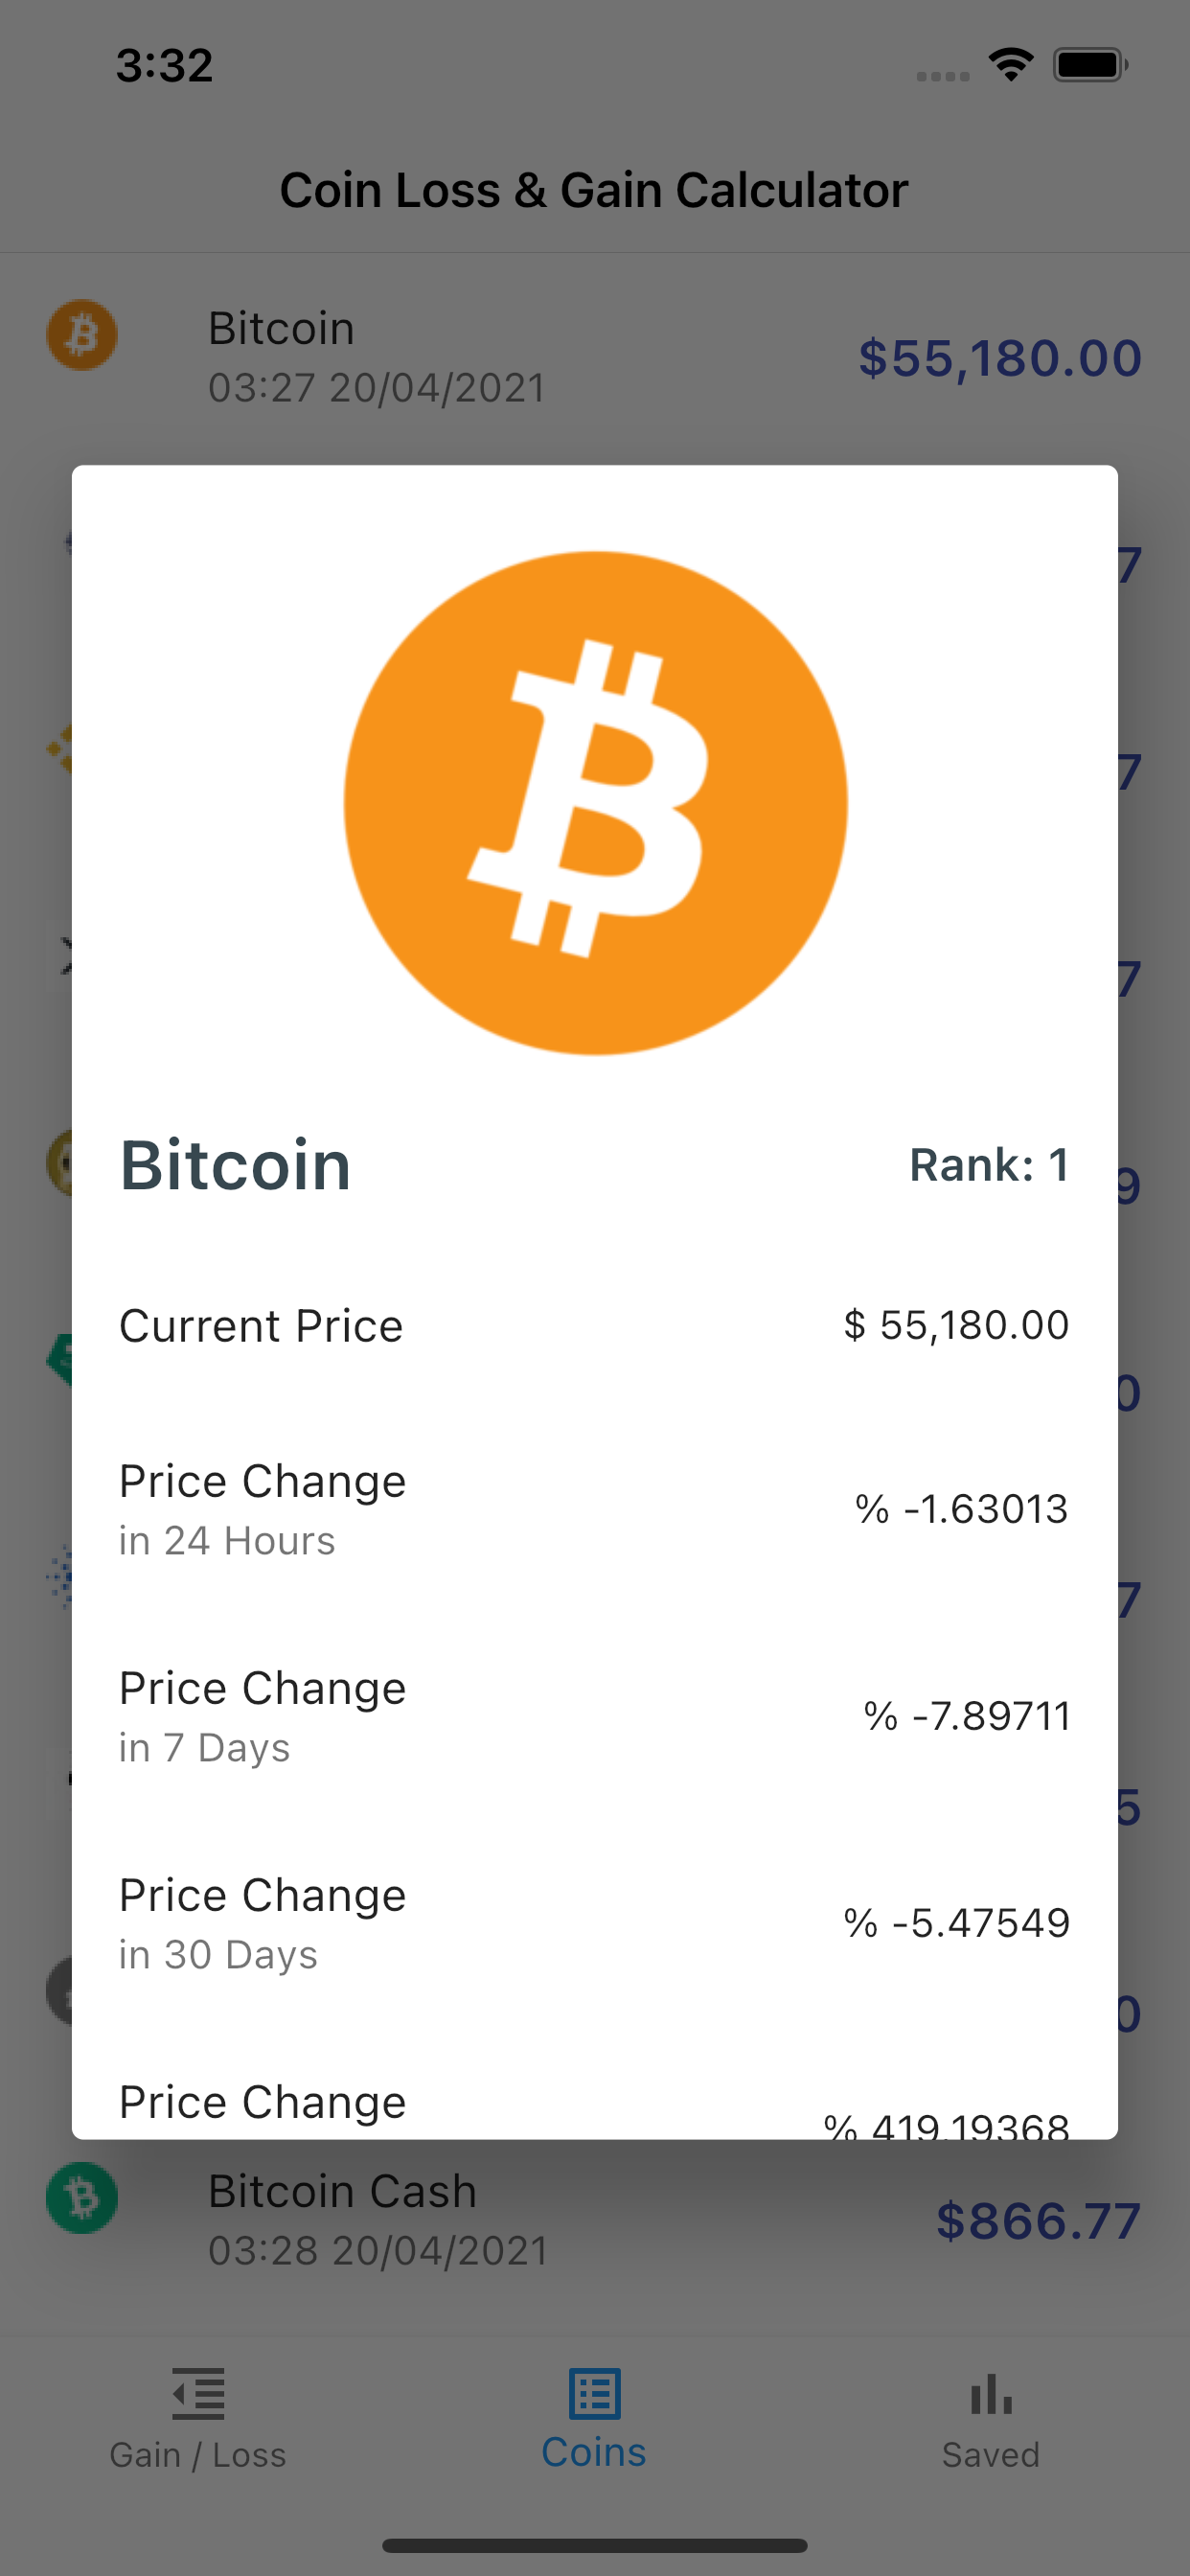 Crypto Loss Gain Calculator App build with Flutter